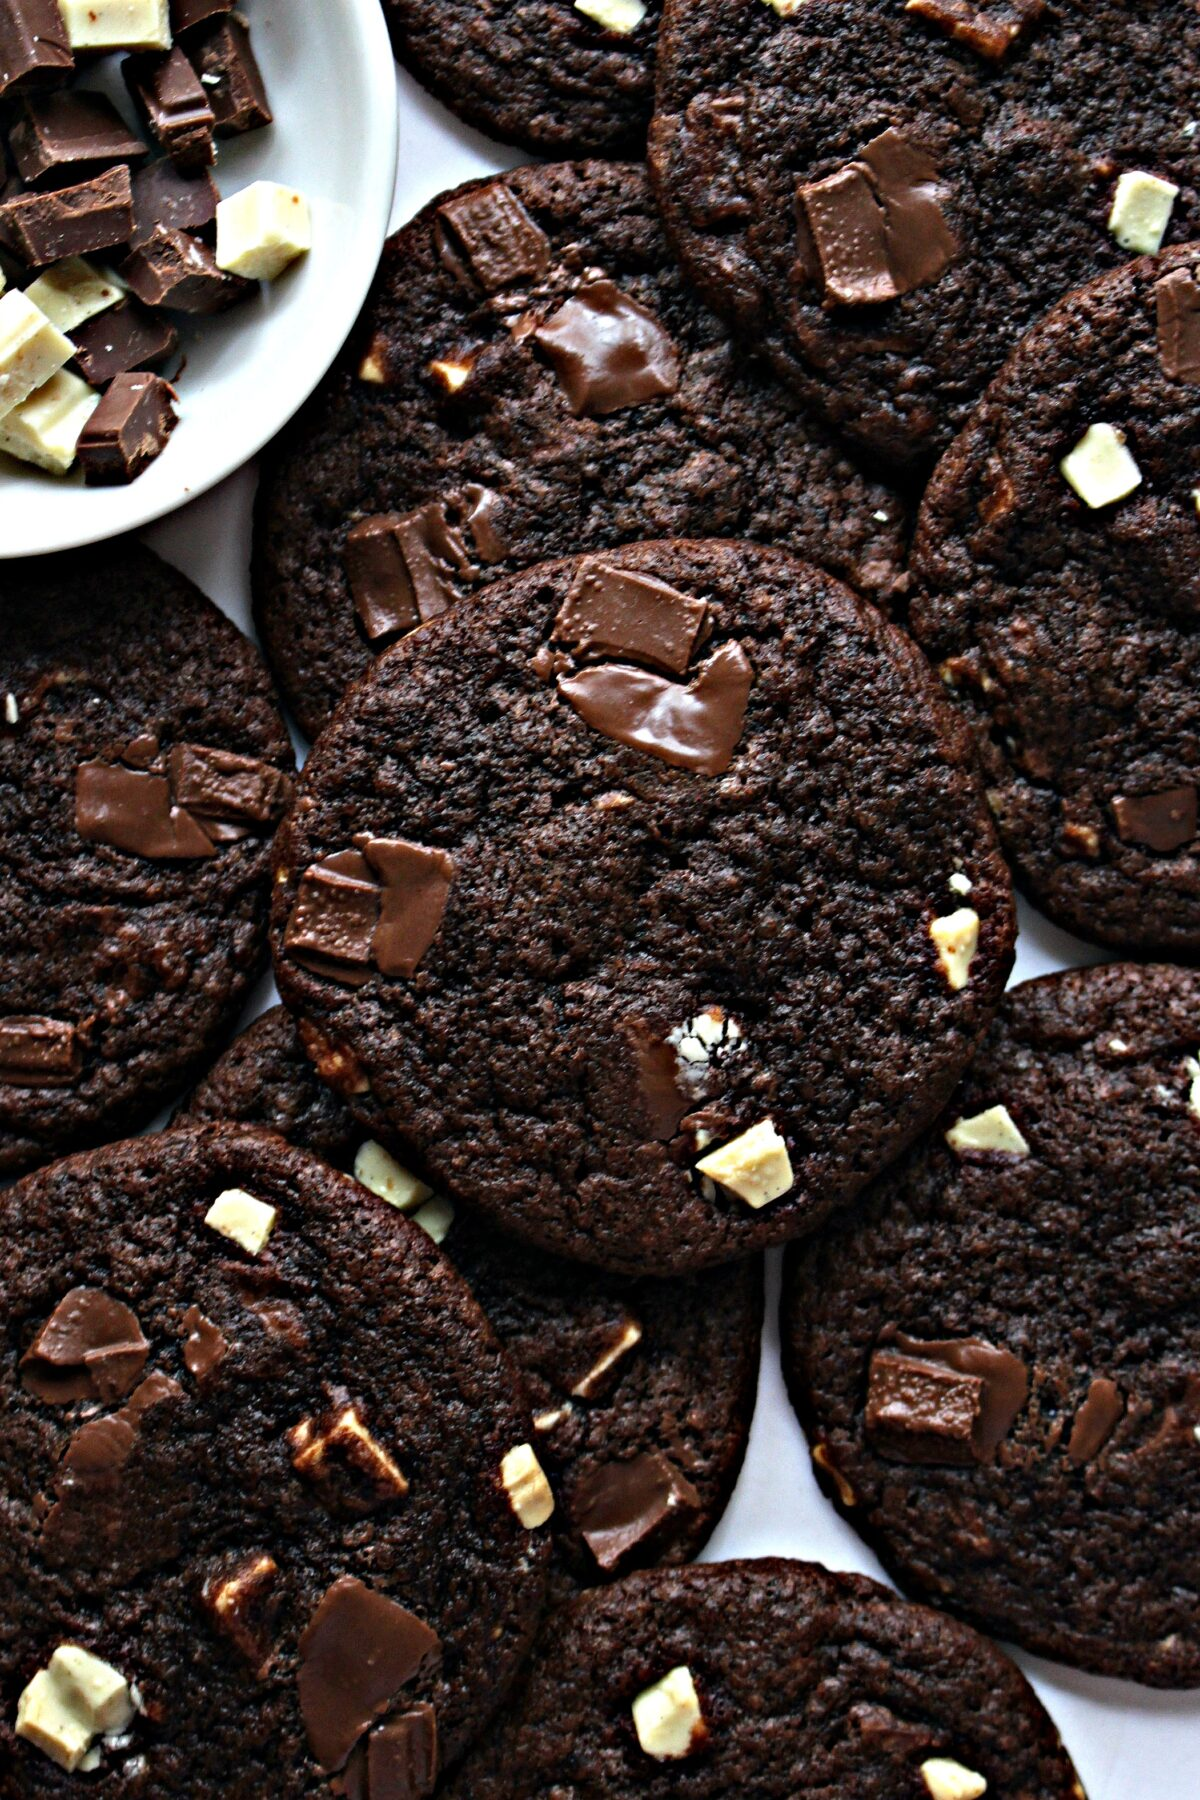 Dark chocolate brown Chocolate Chunk Cookies with pieces of dark and white chocolate on top.